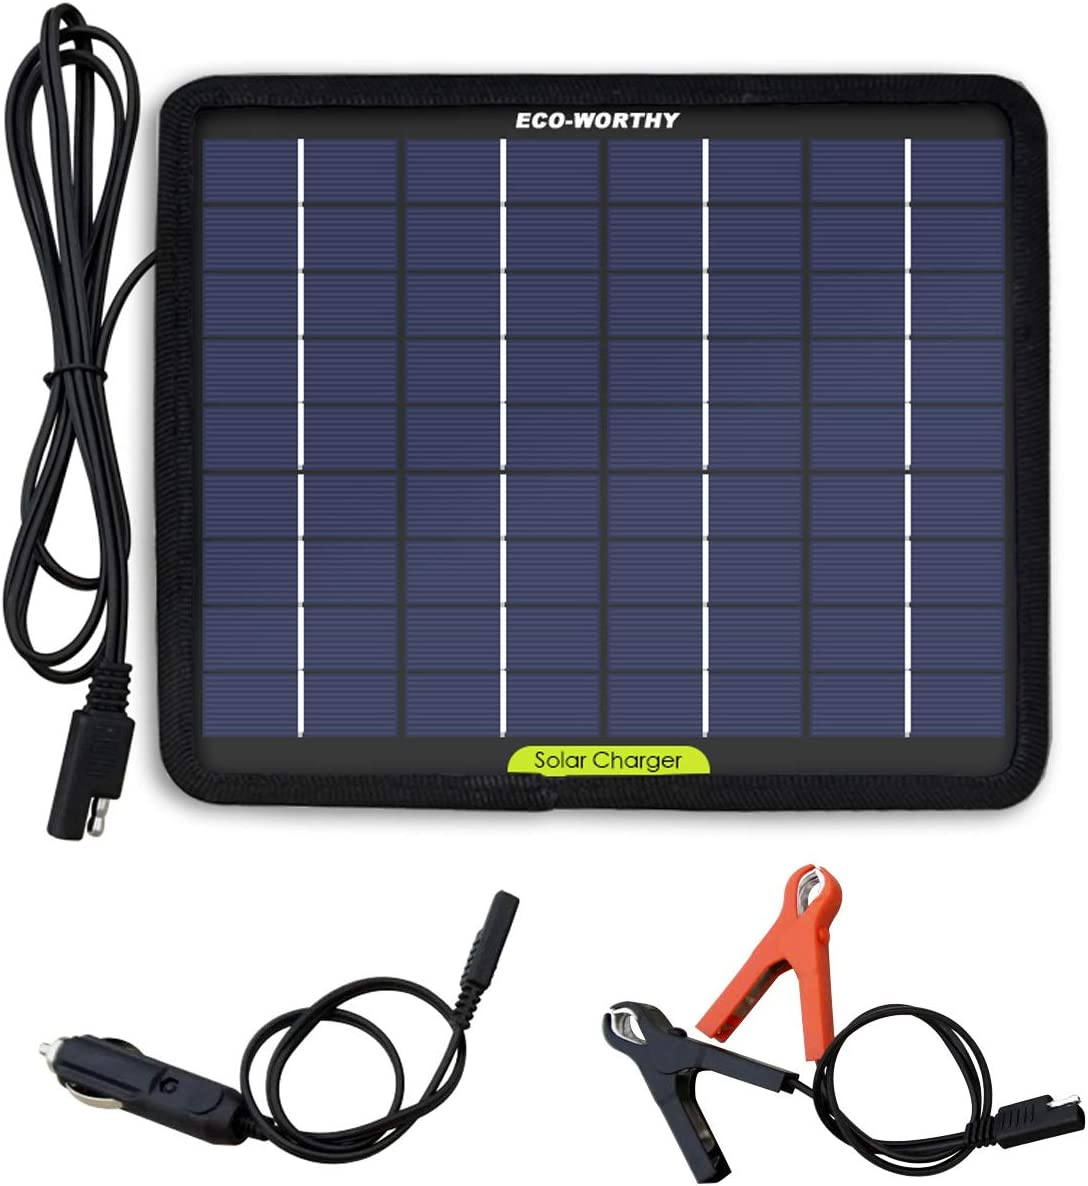 Eco-Worthy Solar Charger and Maintainer